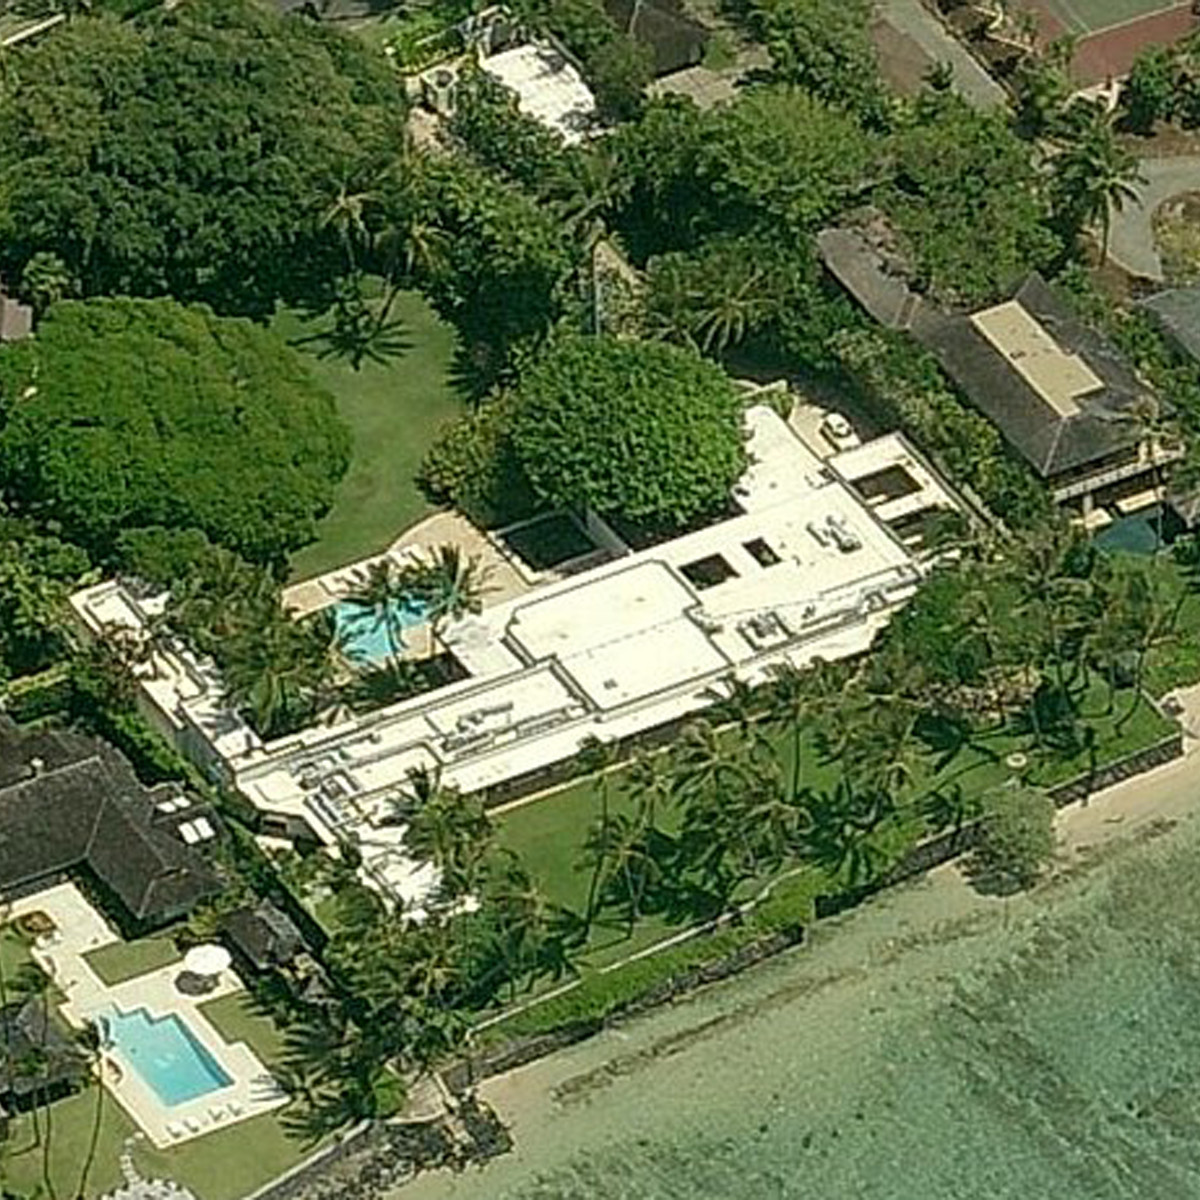 Fayez Sarofim to marry Susan Krohn January 2014 home in Hawaii